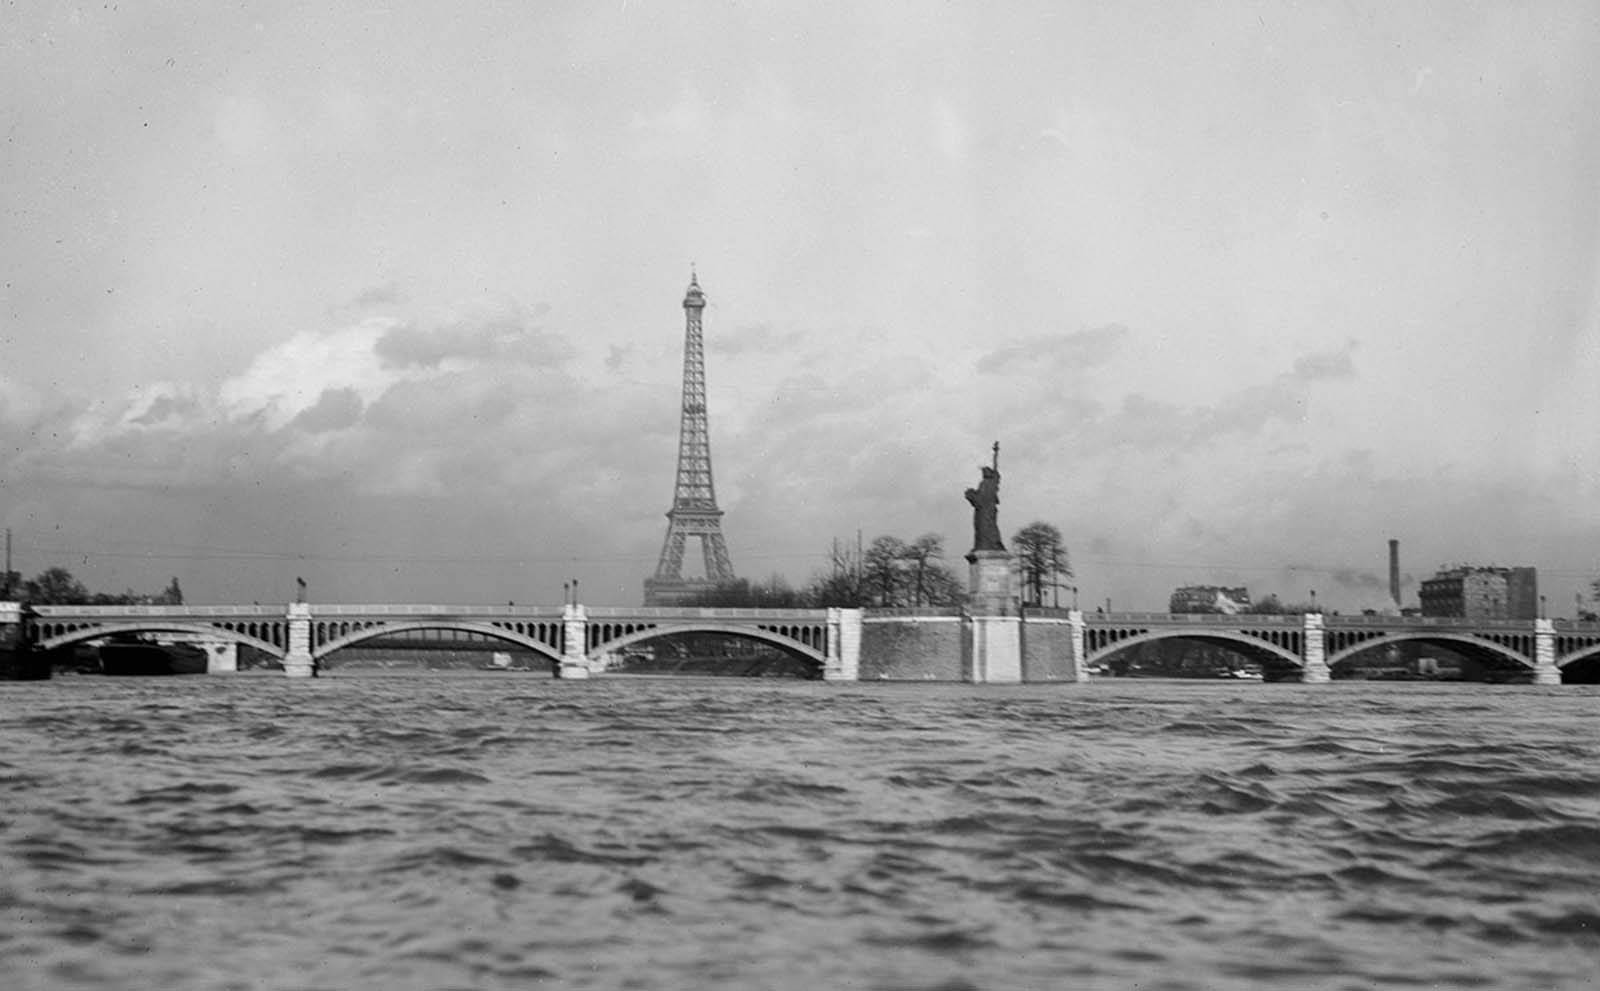 The Eiffel Tower and a replica of the Statue of Liberty on Île aux Cygnes in Paris in March of 1919.